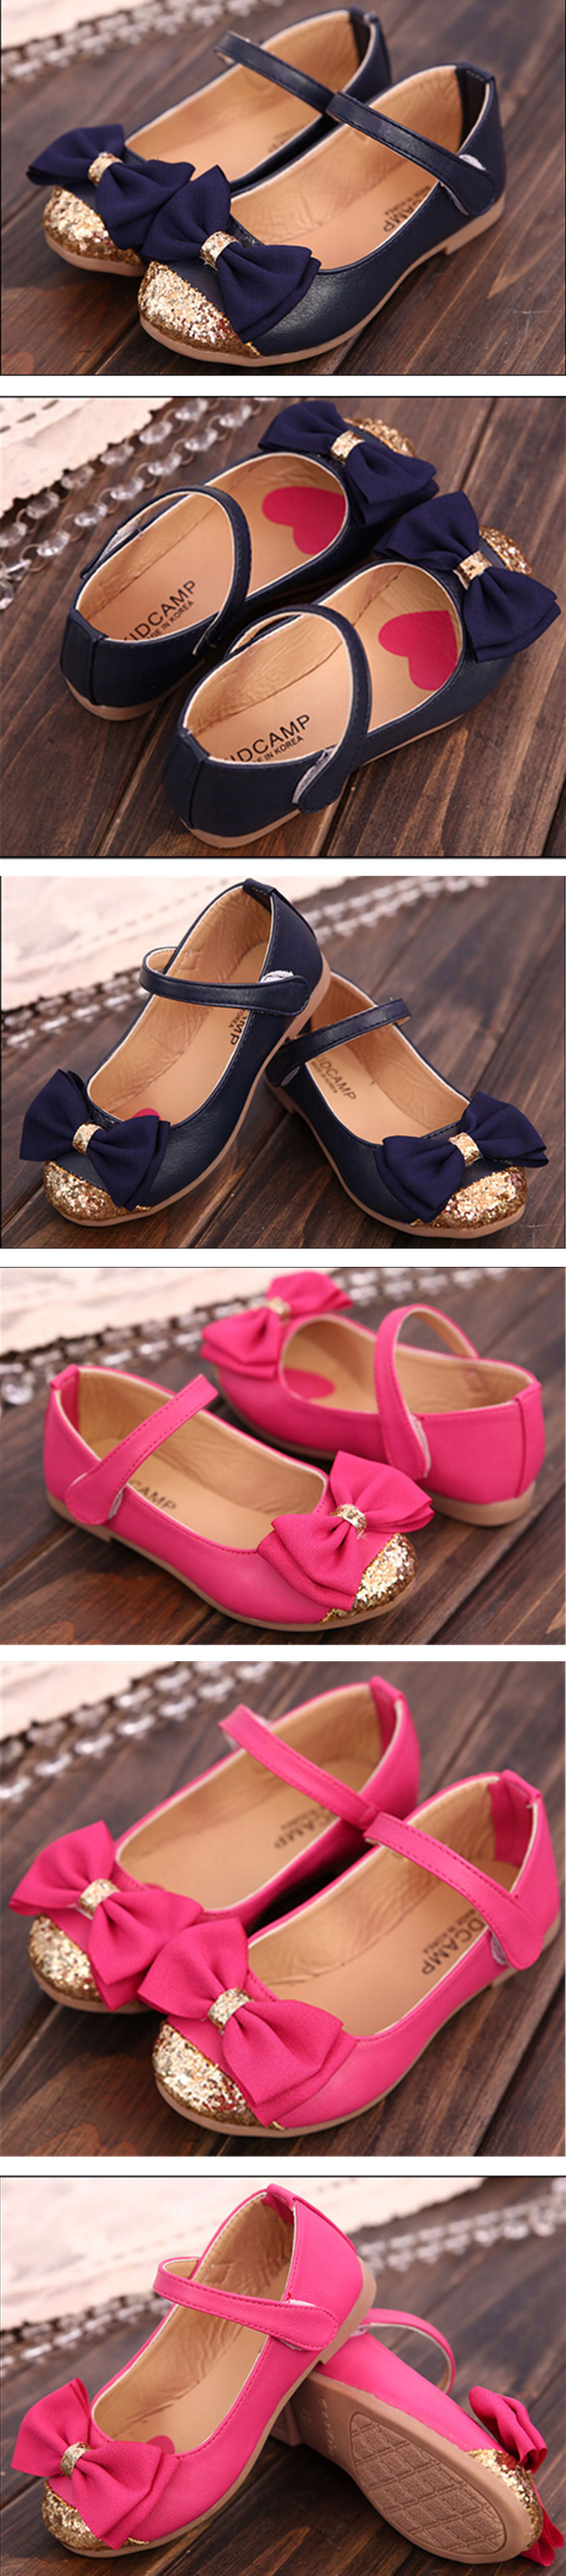 Toddler Baby Girl PU Leather Kids Mary Jane Flats Party Dancer Casual Art Bowknot Dress Flounce Princess Shoes